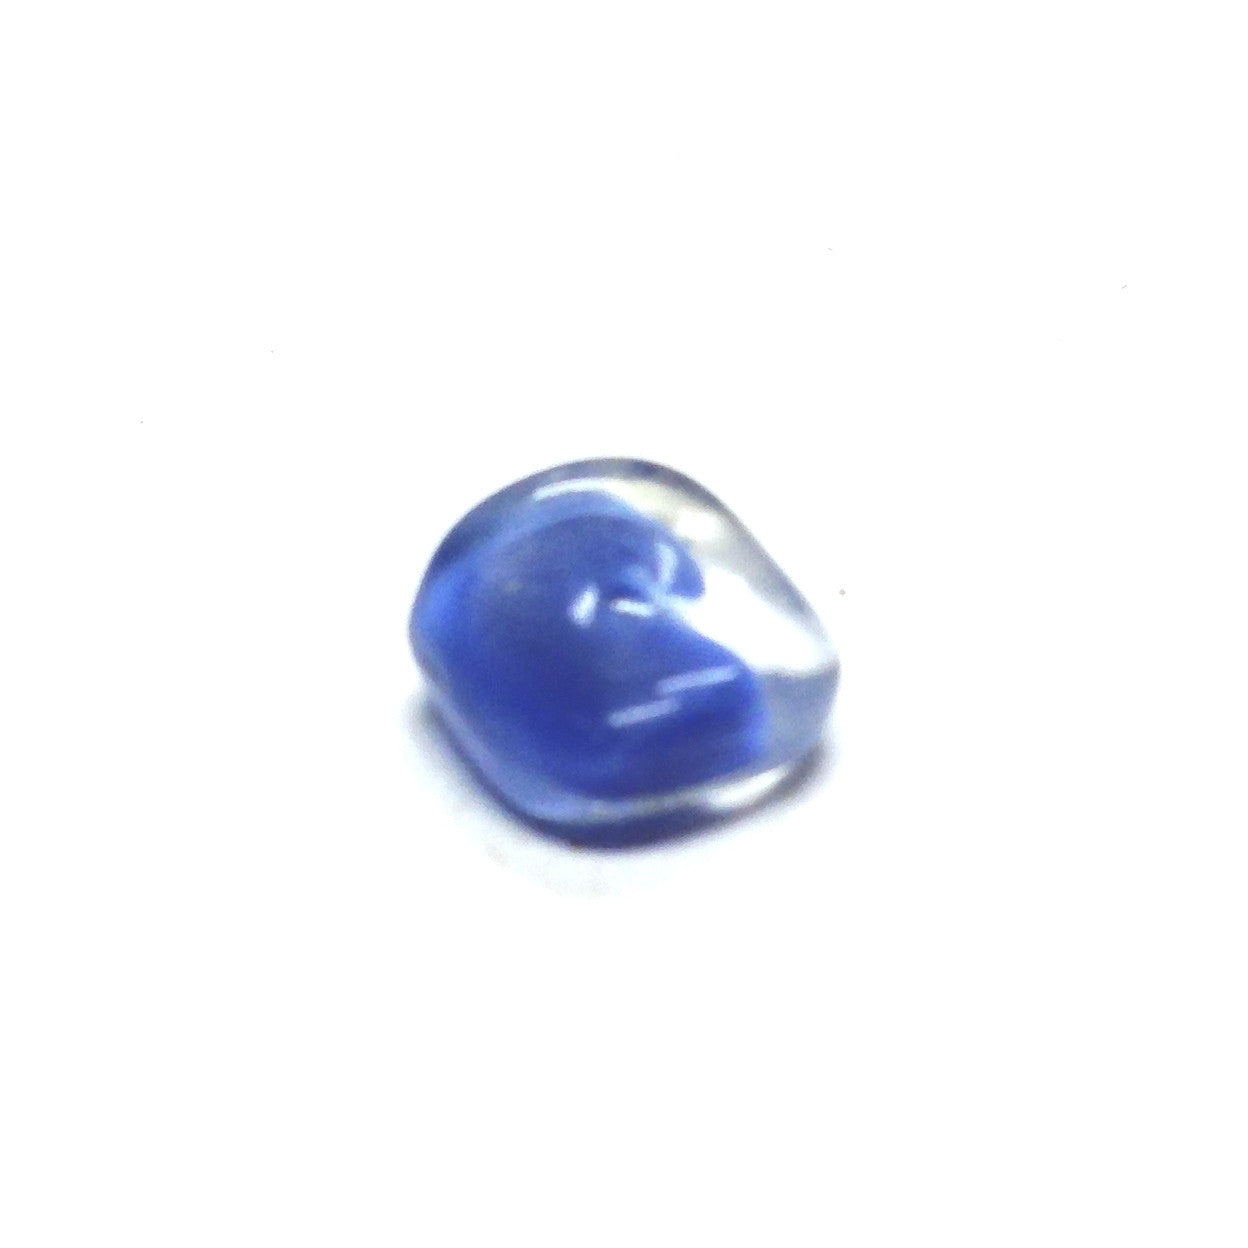 8MM Blue Glass Rondel Bead (200 pieces)